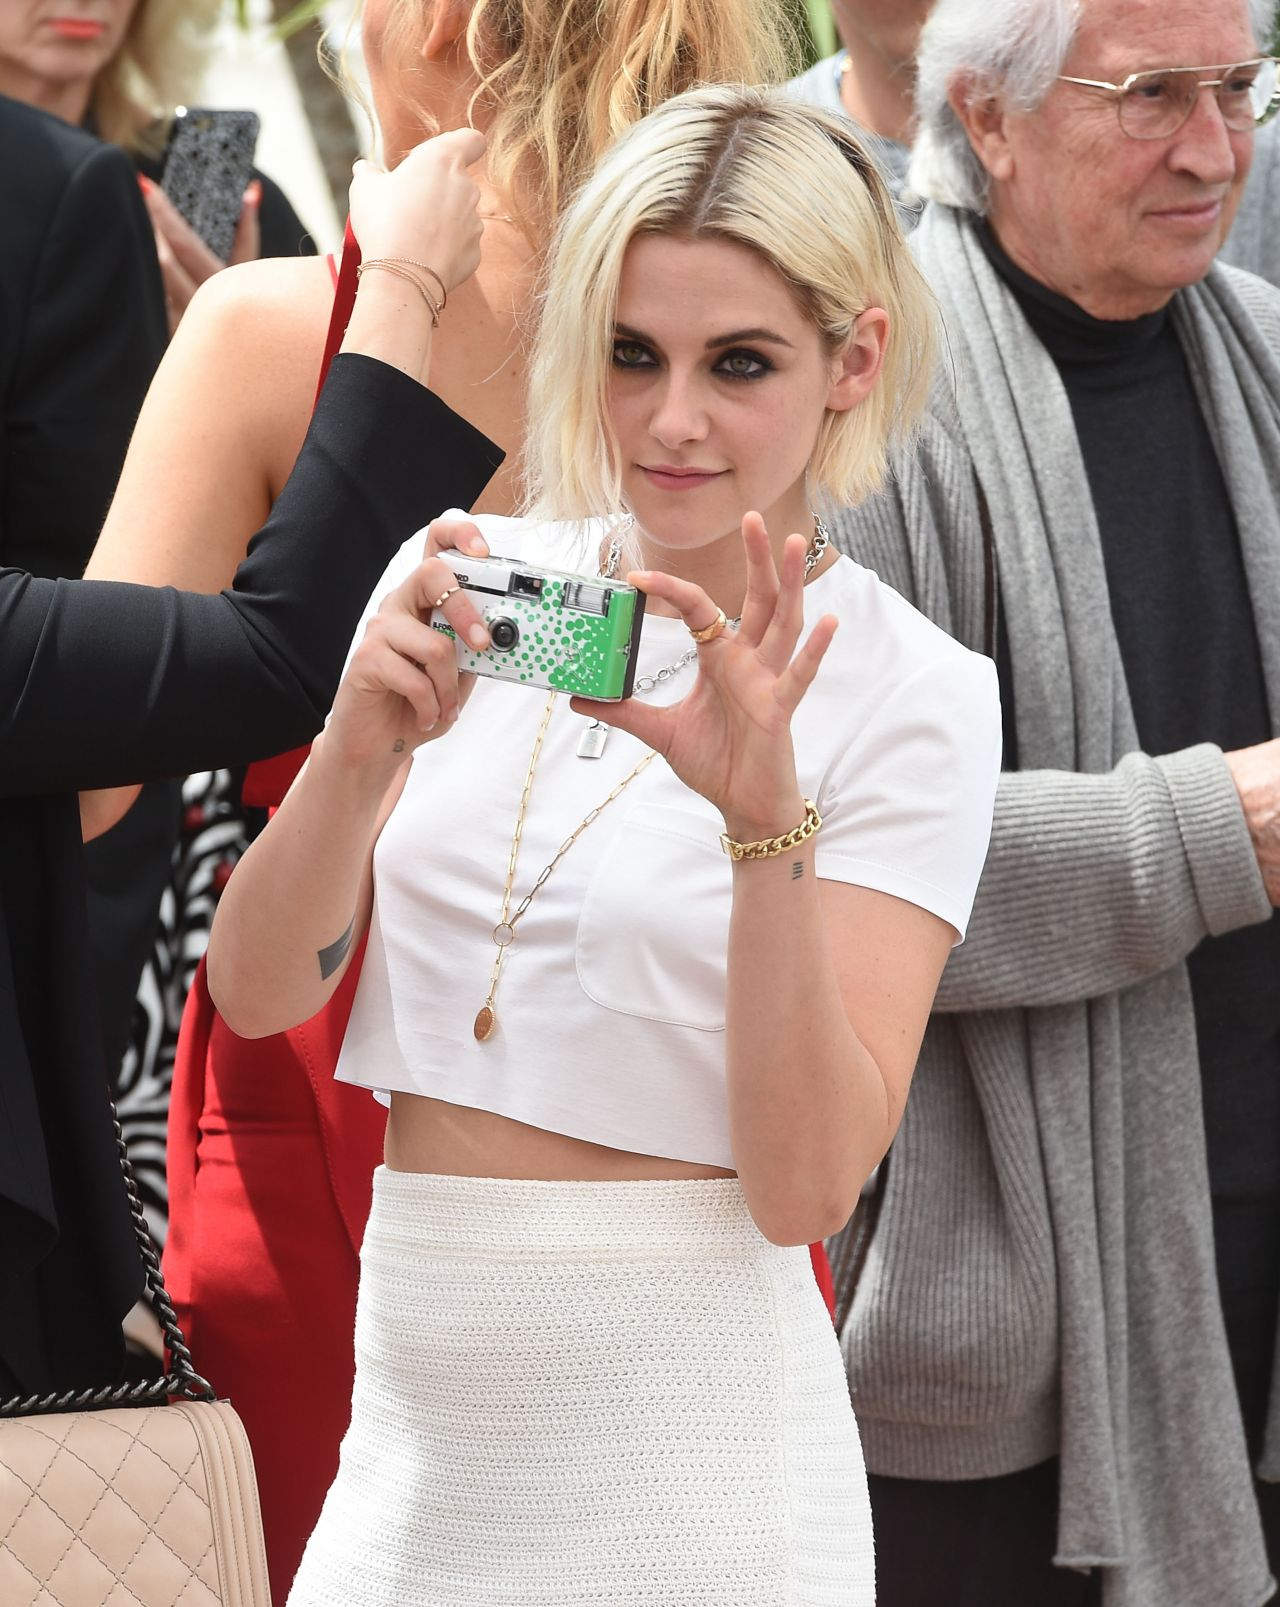 kristen-stewart-arrives-at-palais-des-festival-in-cannes-france-5-11-2016-13